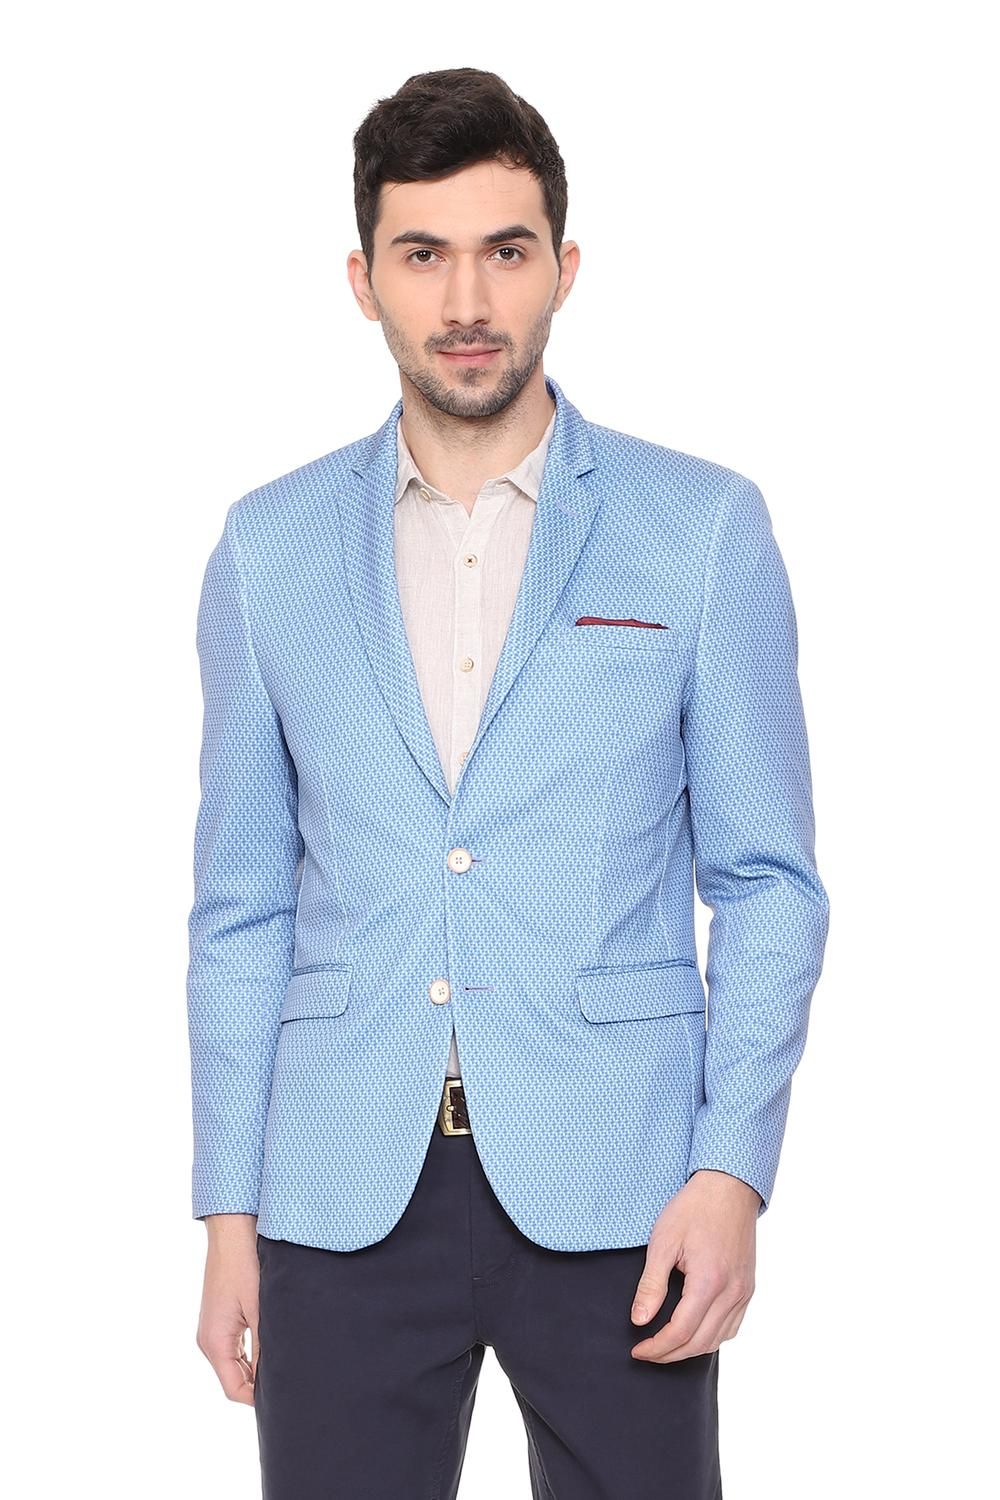 b9c900fd1454 Solly Sport Suits & Blazers, Allen Solly Blue Blazer for Men at  Allensolly.com